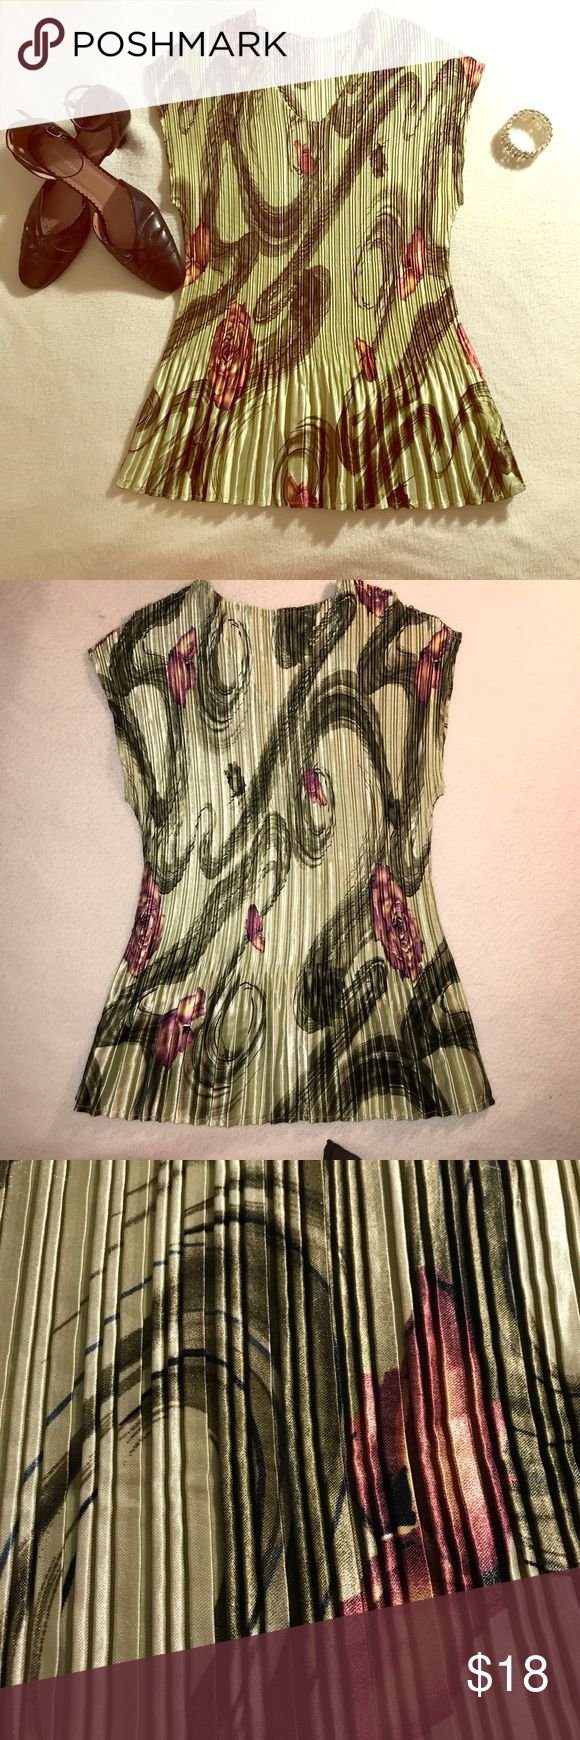 Women's pleated Top Super COMFY, lightweight shell has beautiful floral print. Can be worn alone or under your favorite cardigan or jacket! 100% Polyester. Hand wash cold water and hang dry. Tops